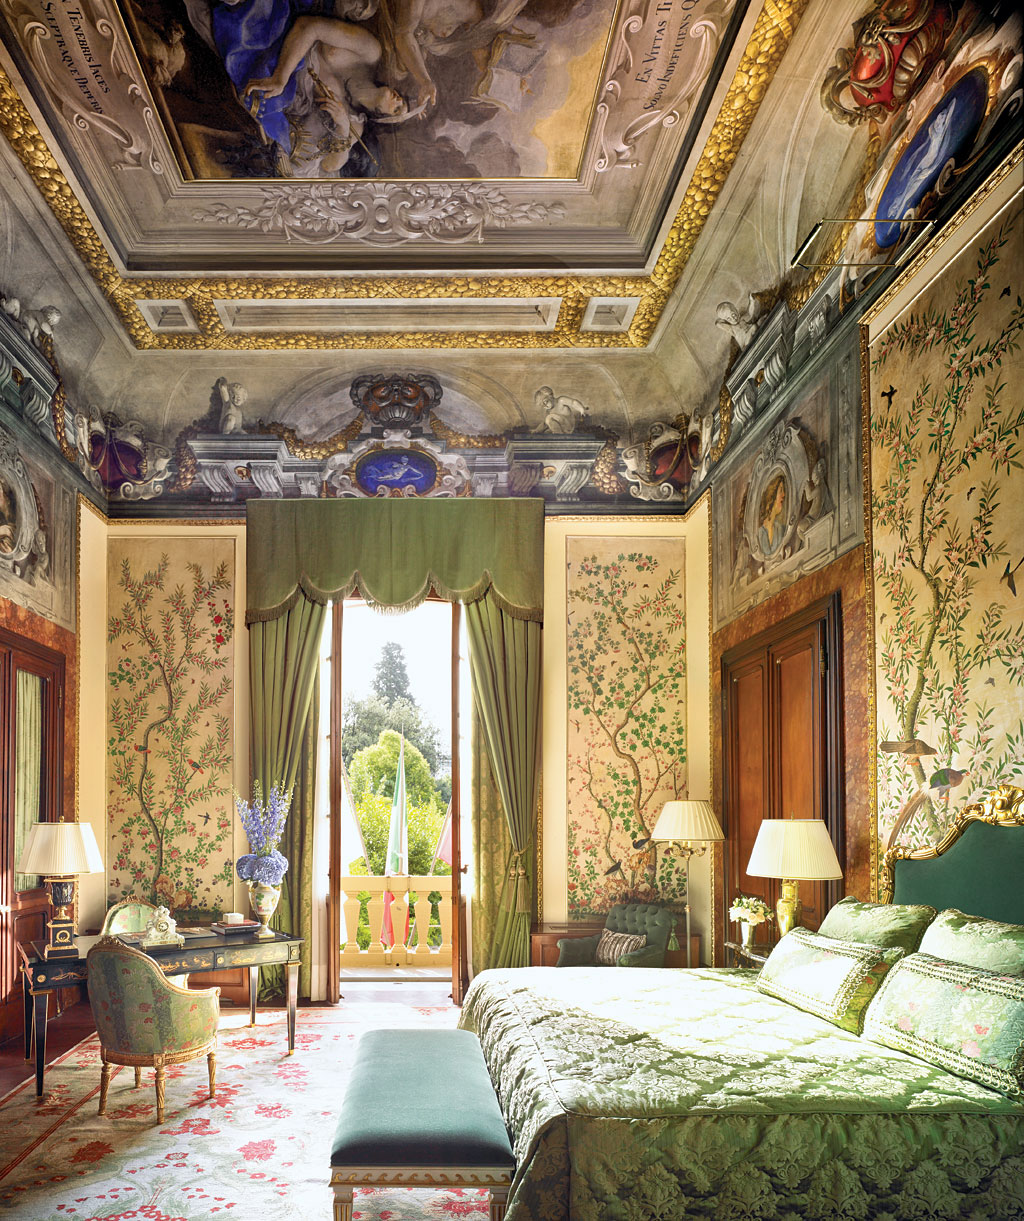 Best luxury hotels in florence top 10 ealuxe com for Design hotel florence italy